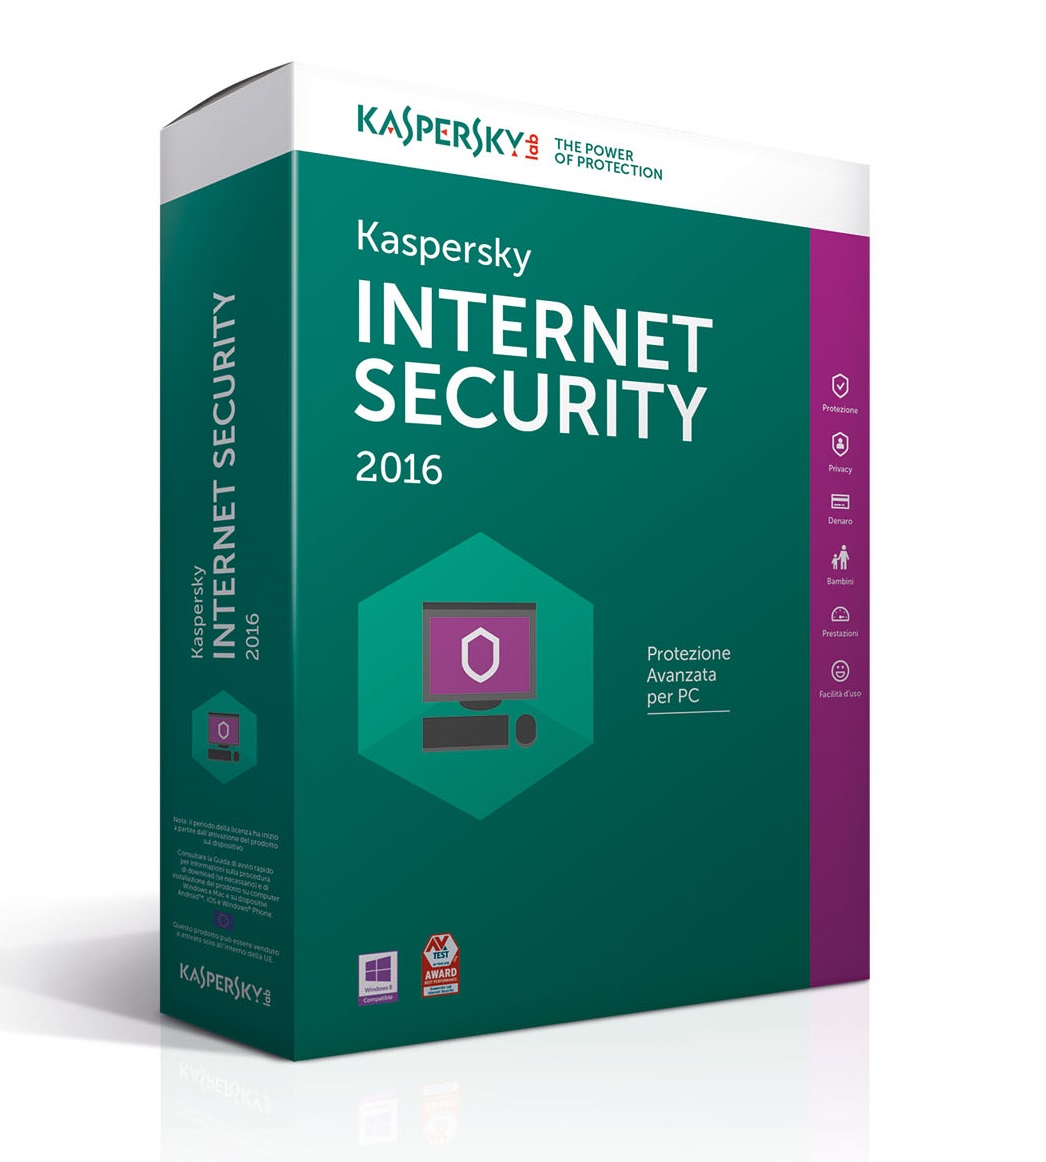 Код Активации Для Kaspersky Internet Security 2010 На 365 Дней